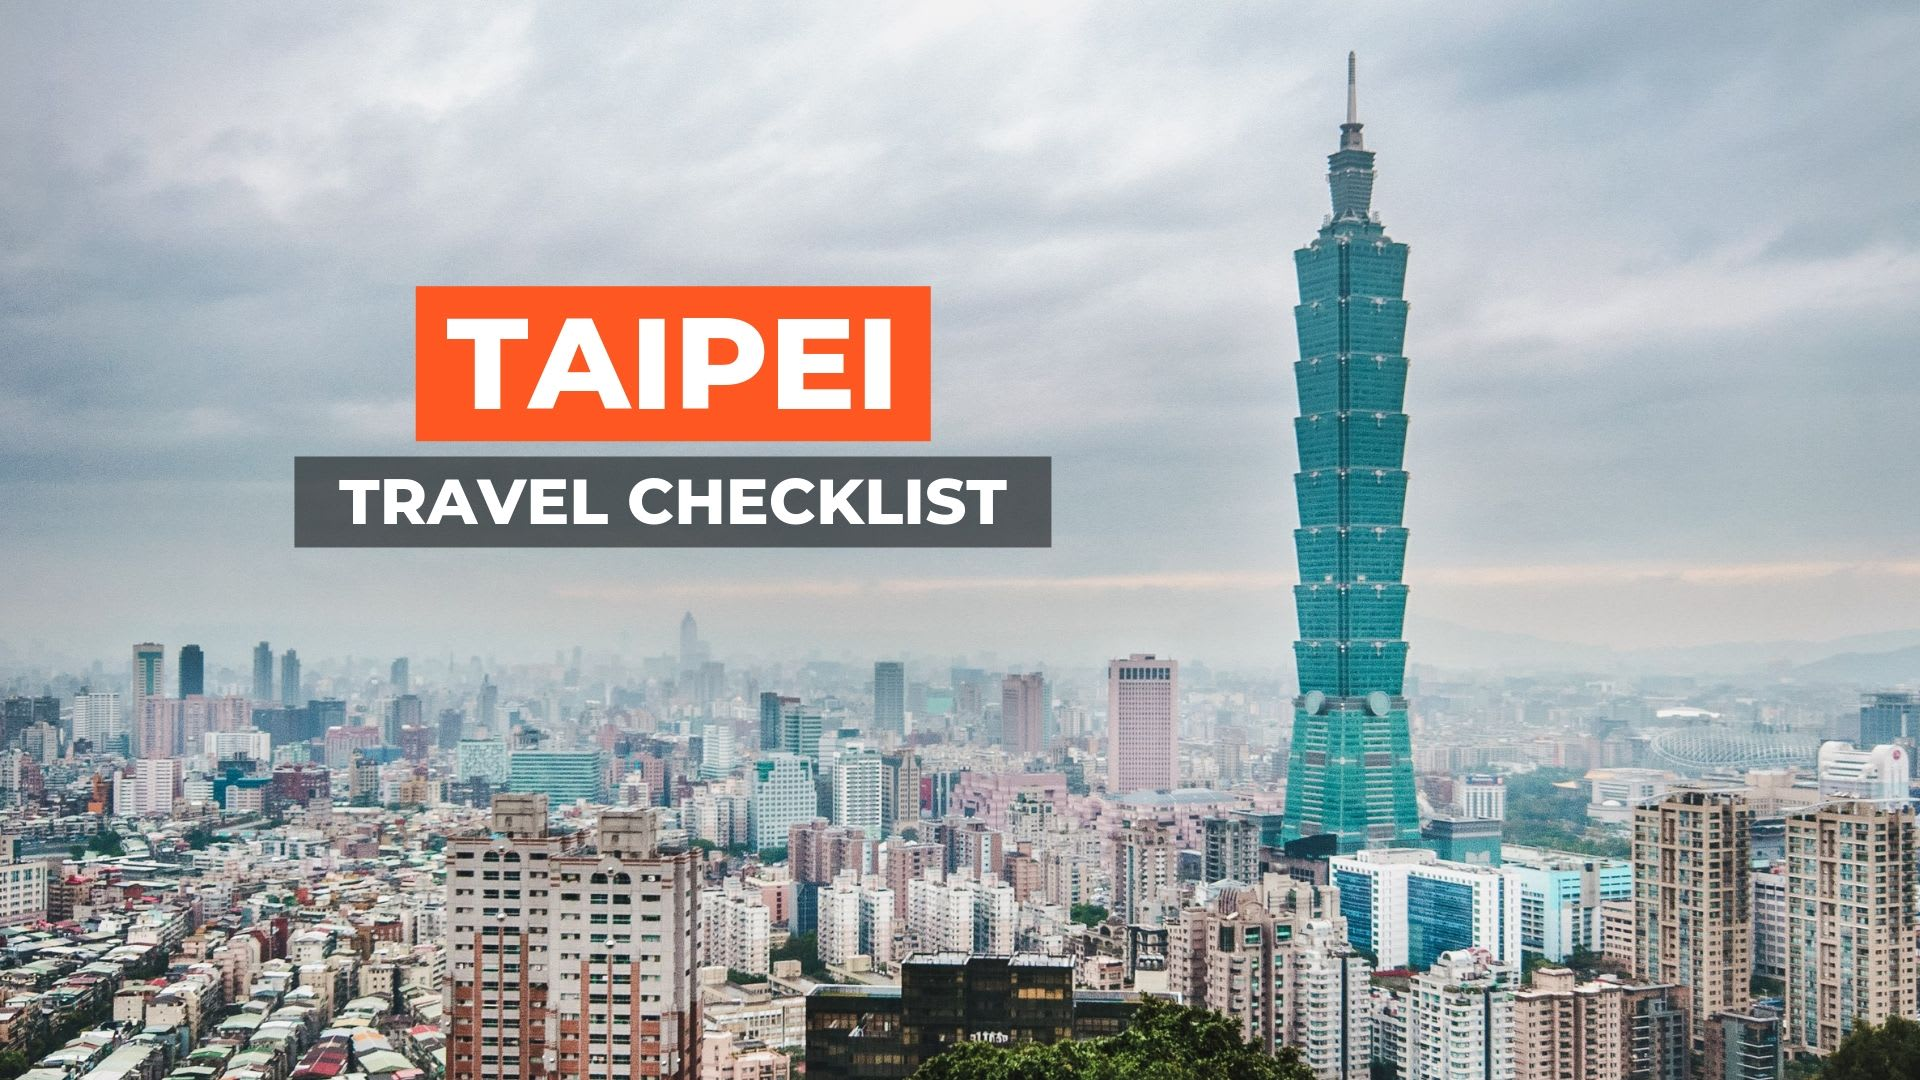 5 Taipei Hotspots For The Best Night Views Of The City